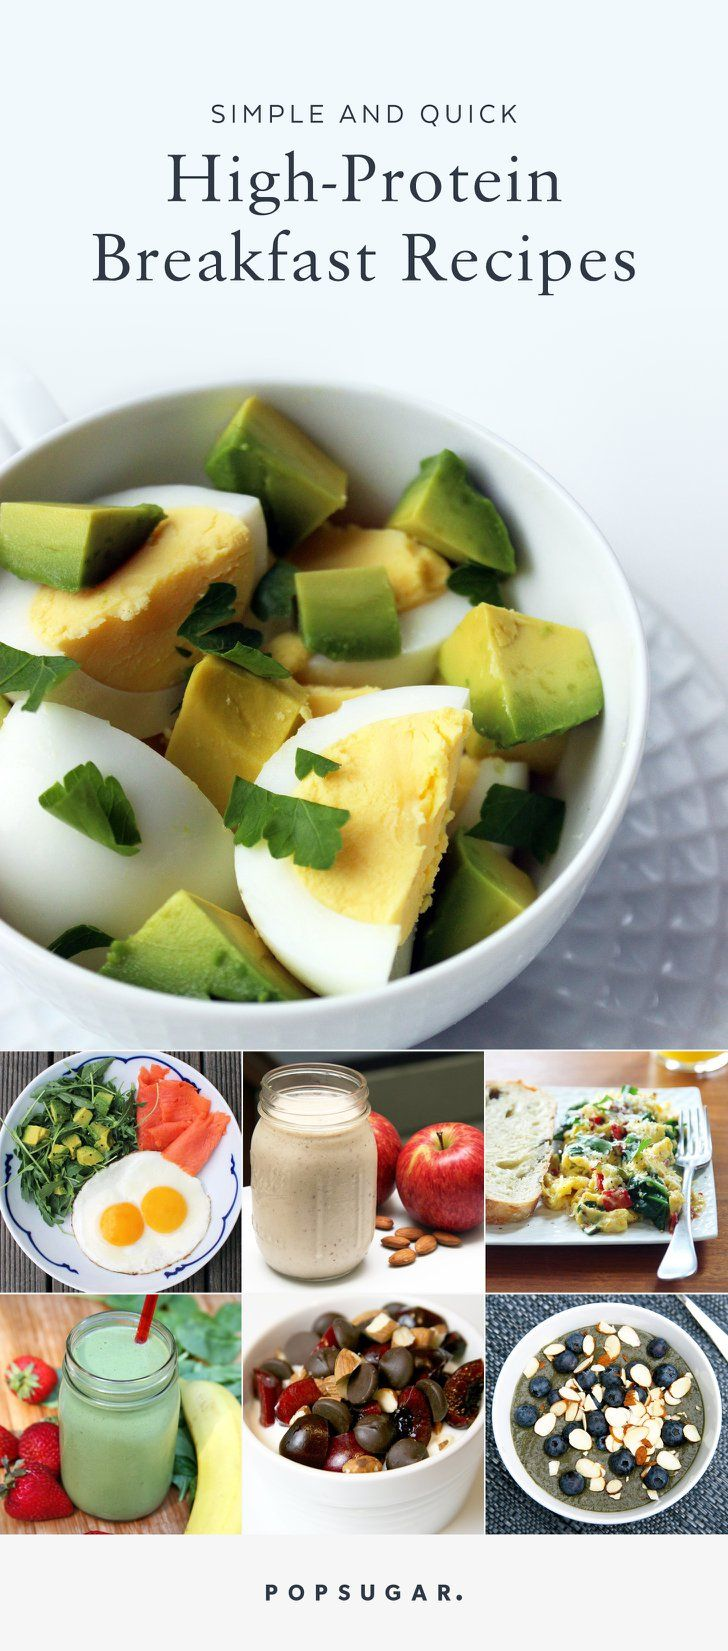 21 high protein breakfasts that barely take any time to prepare 21 high protein breakfasts that barely take any time to prepare forumfinder Image collections